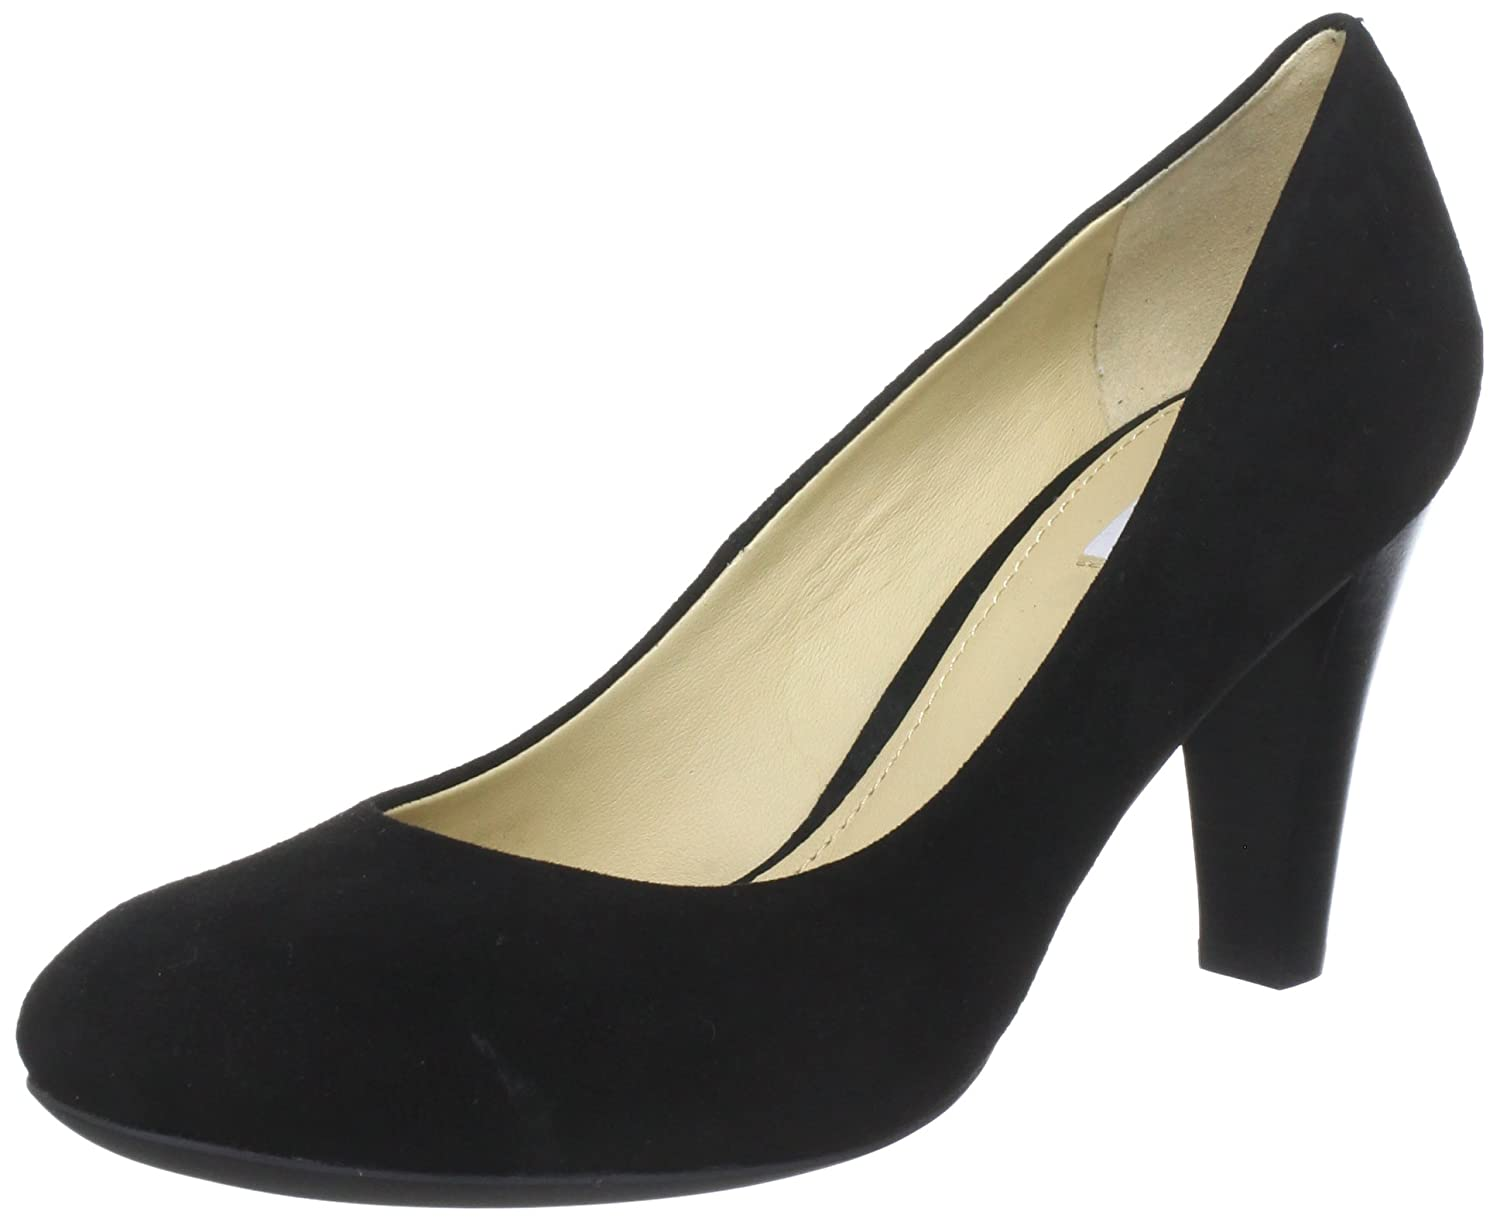 huge selection of 8394b eb28f Geox Women's Marie Claire High Leather Dress Pump, Black, 40 ...